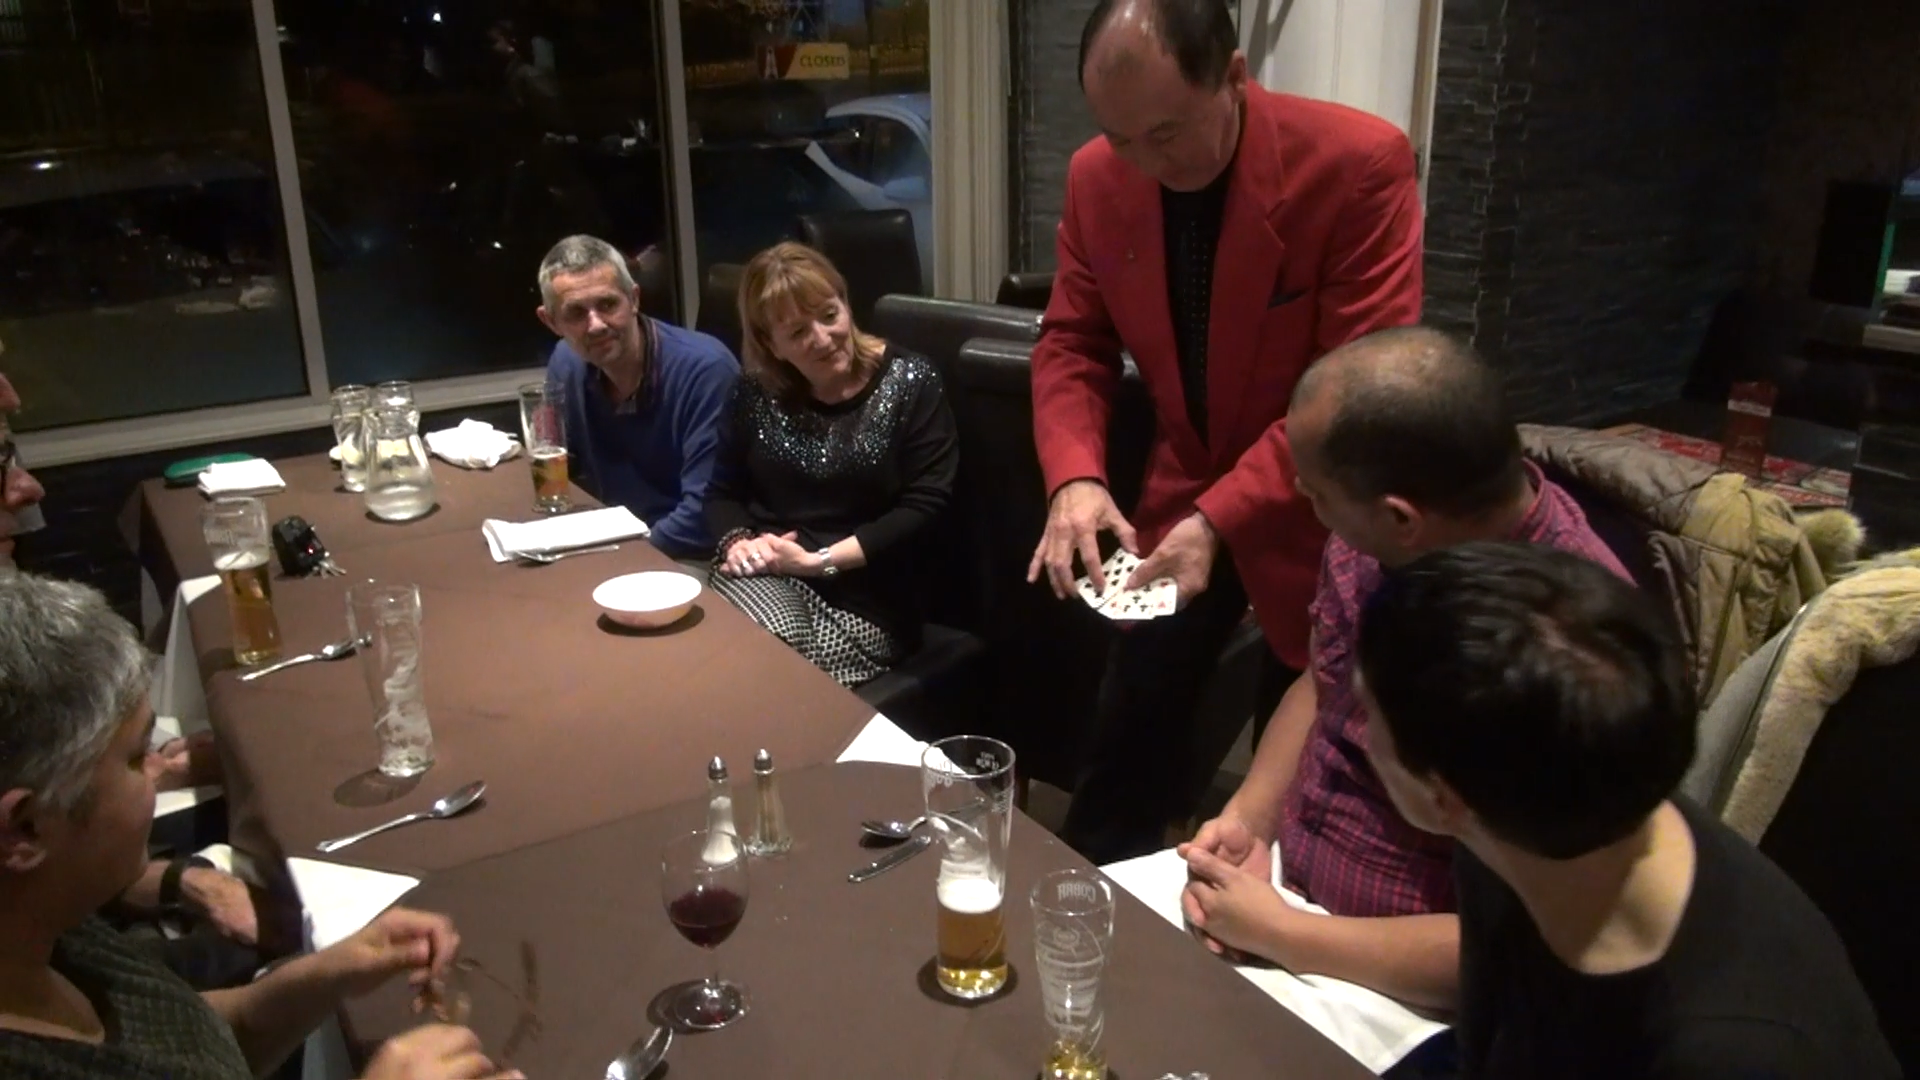 Table in restaurant with card trick